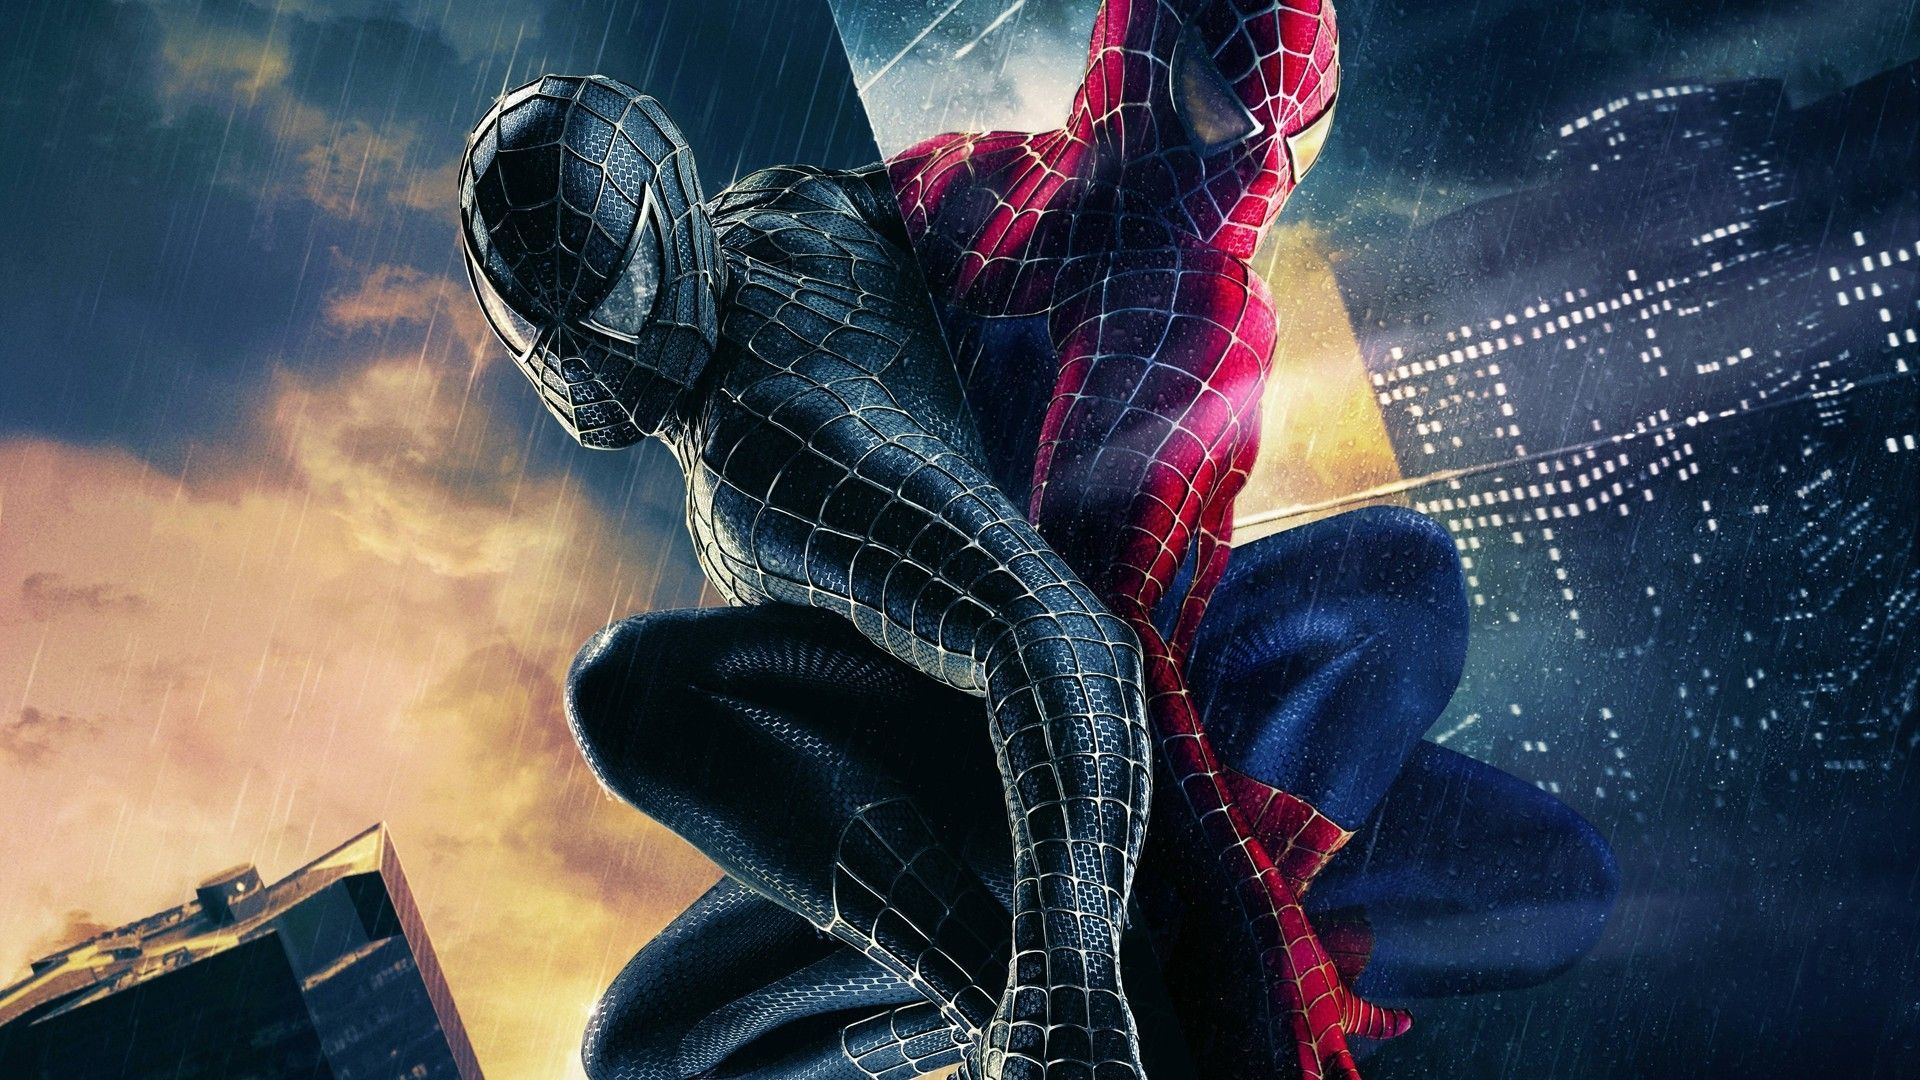 Spiderman Wallpapers HD - Wallpaper Cave